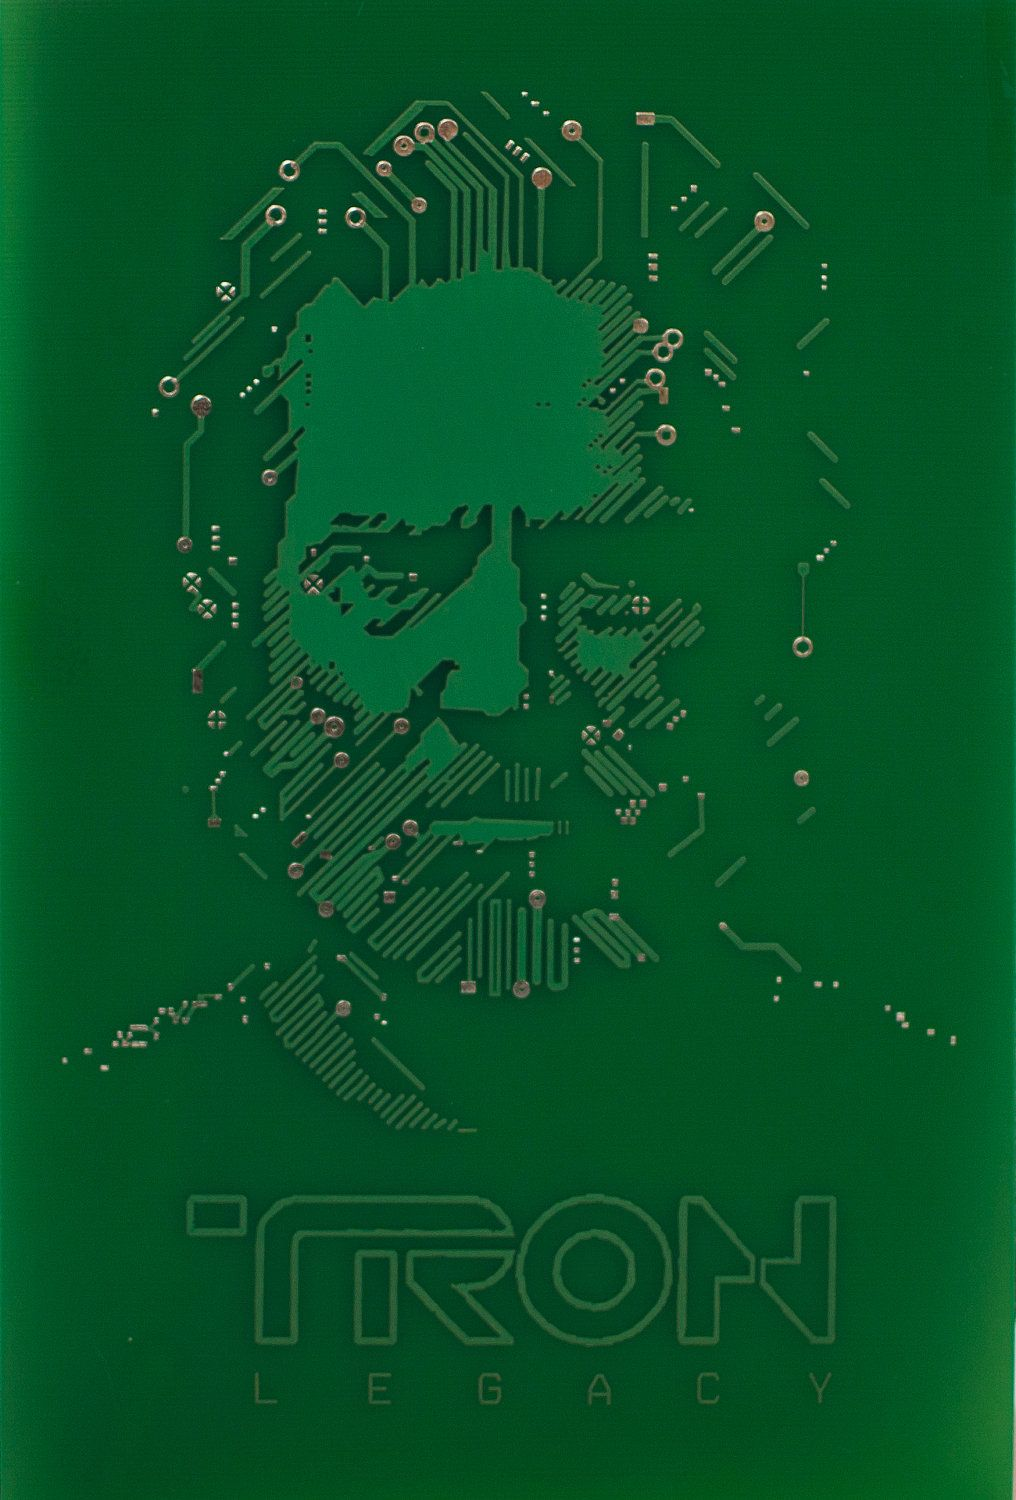 Flynn Lives Real Printed Circuit Board Pcb Art And Photographs How To Create A With Printer Photo Tron 1499 Via Etsy